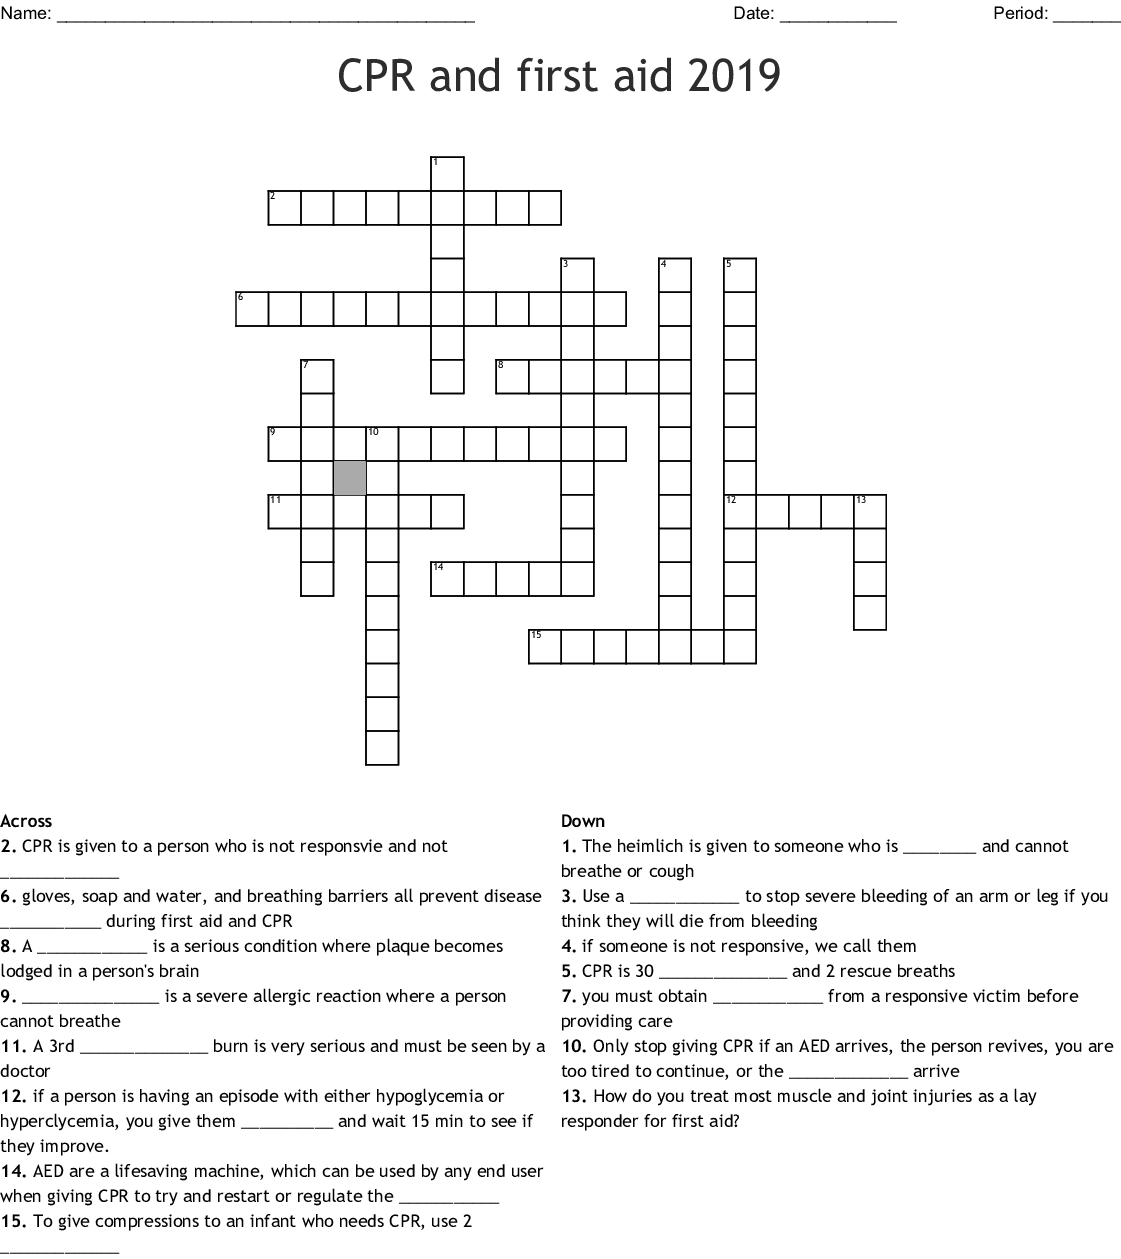 Cpr And First Aid Crossword